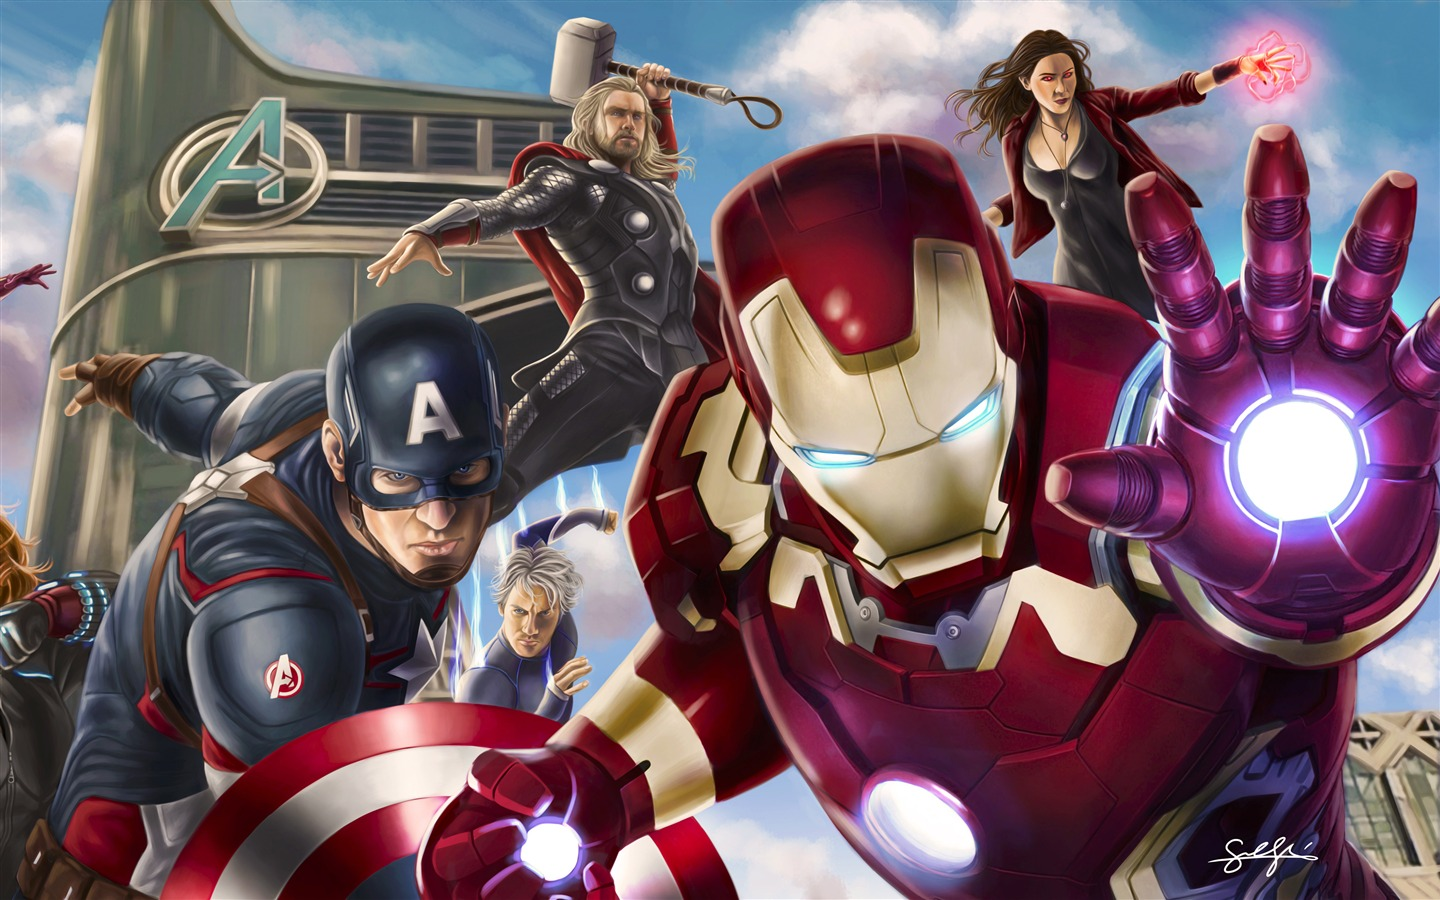 Avengers League Poster Artwork Design - 1440x900 wallpaper download